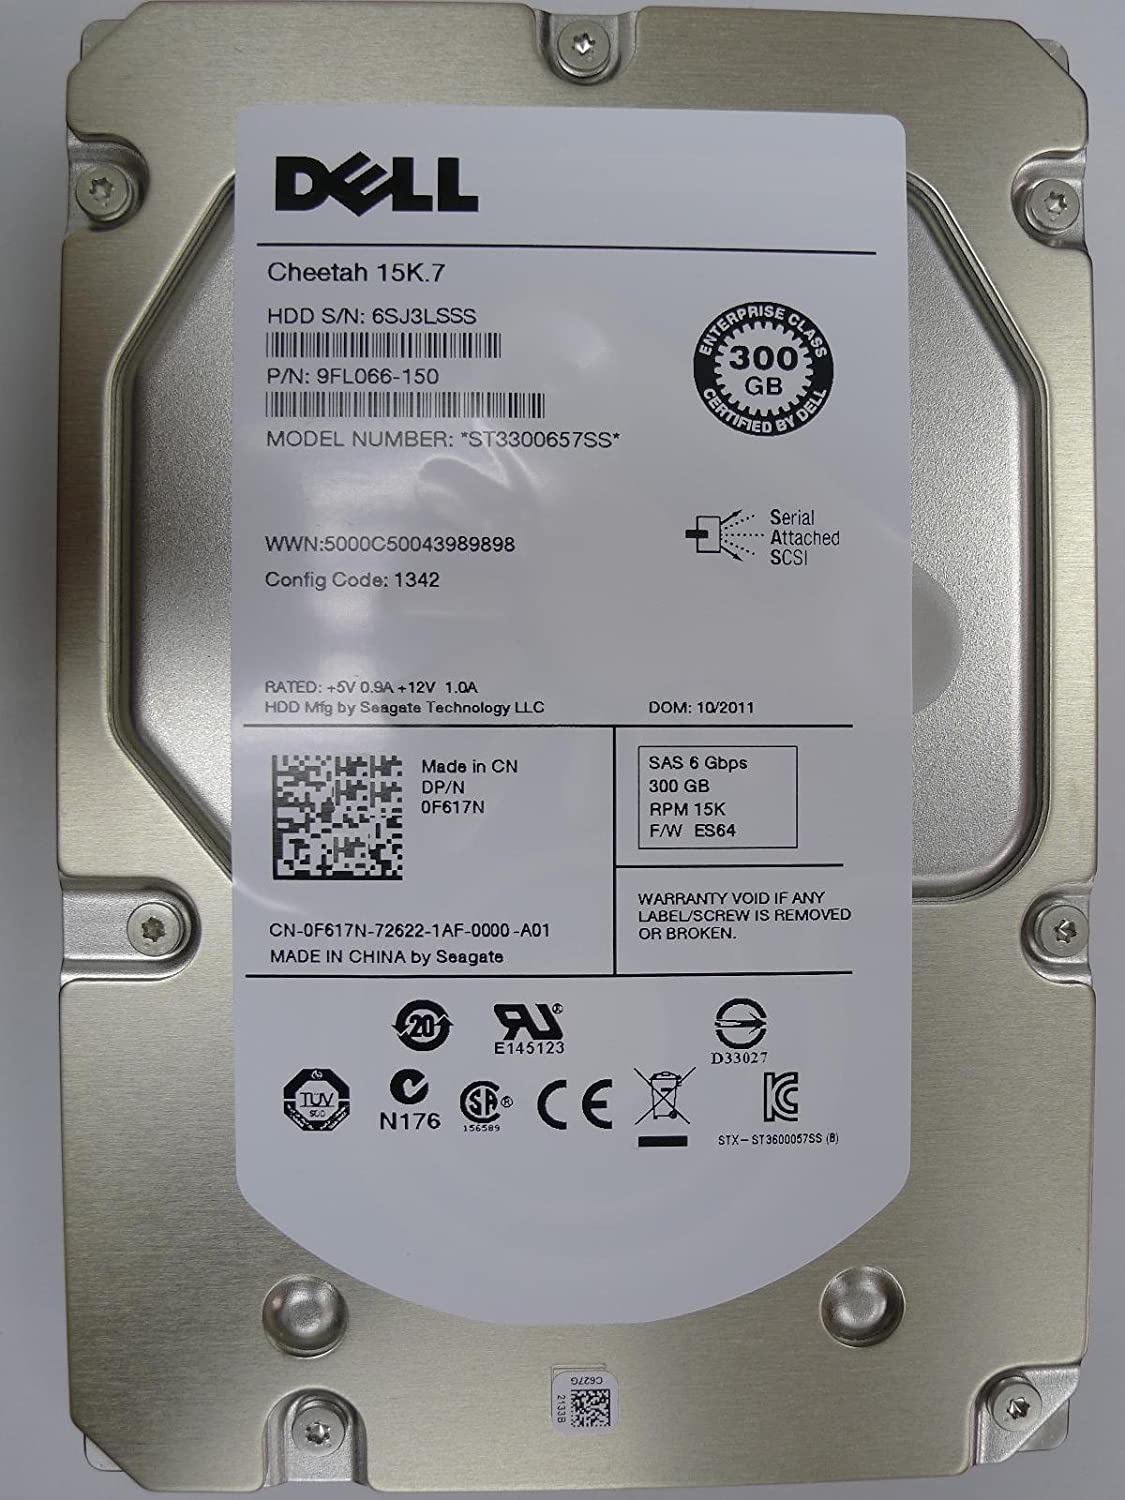 SEAGATE ST3300657SS-DEL Seagate Cheetah 15K.7 ST3300657SS 300GB 15K 6.0Gbps Serial SCSI Dell Labeled Seagate 300GB 3.5 15K RPM SAS Hard Drive ST3300657SS